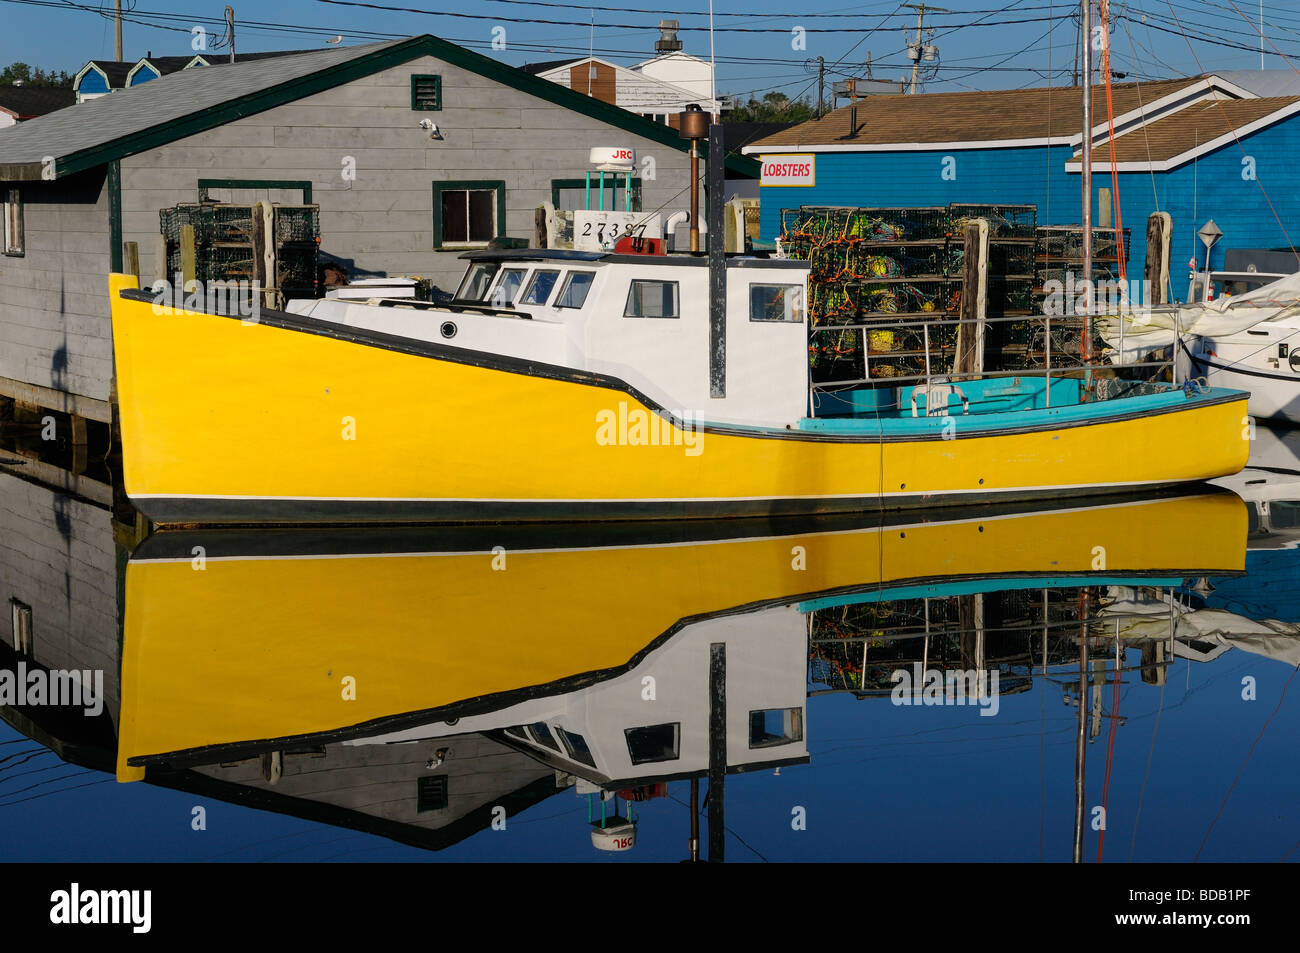 Yellow lobster boat on calm blue water at Fishermans Cove Eastern Passage Halifax Nova Scotia - Stock Image